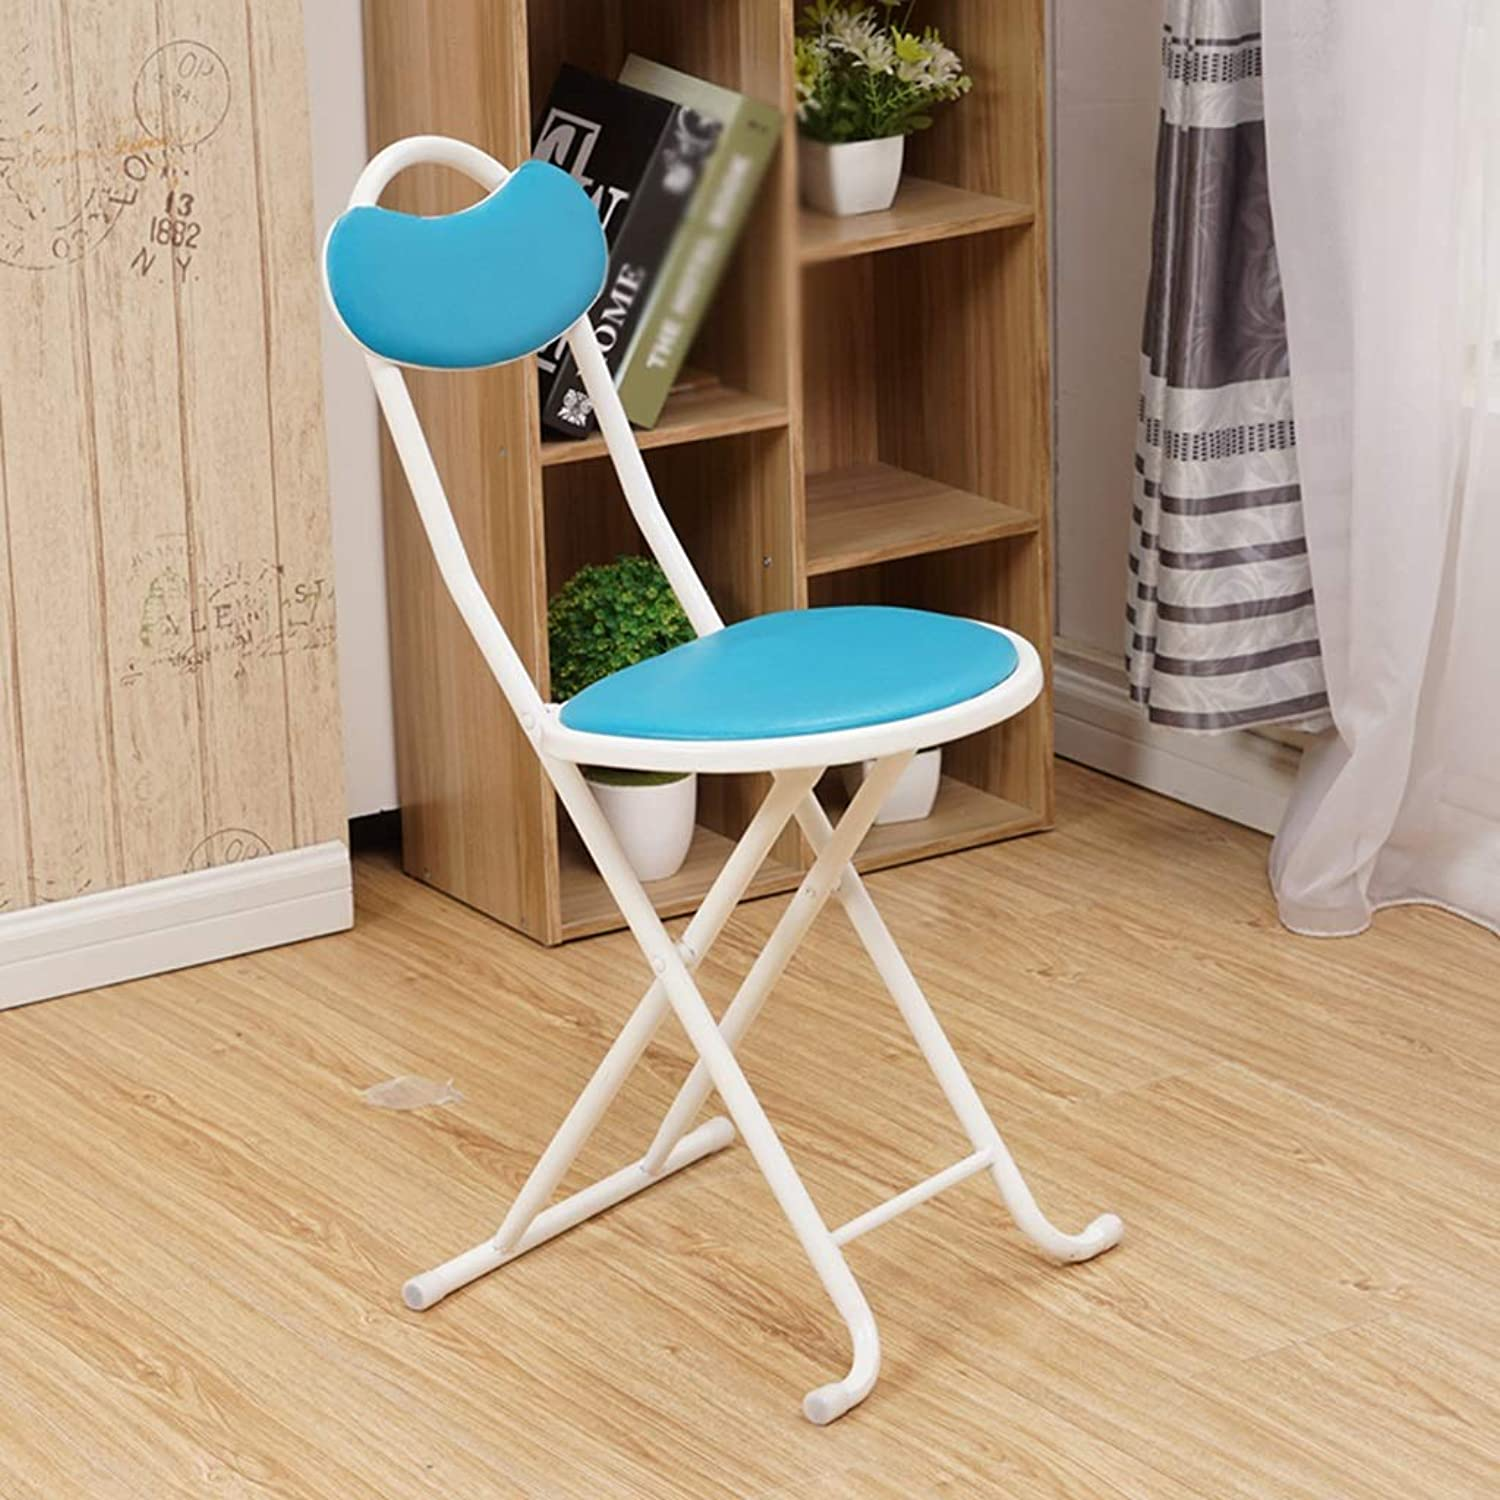 Living Room Folding Chair, Metal Non-Slip Wear Resistant Folding Chairs A Fast Food Shop Convenience Store Folding Chair (color   bluee)